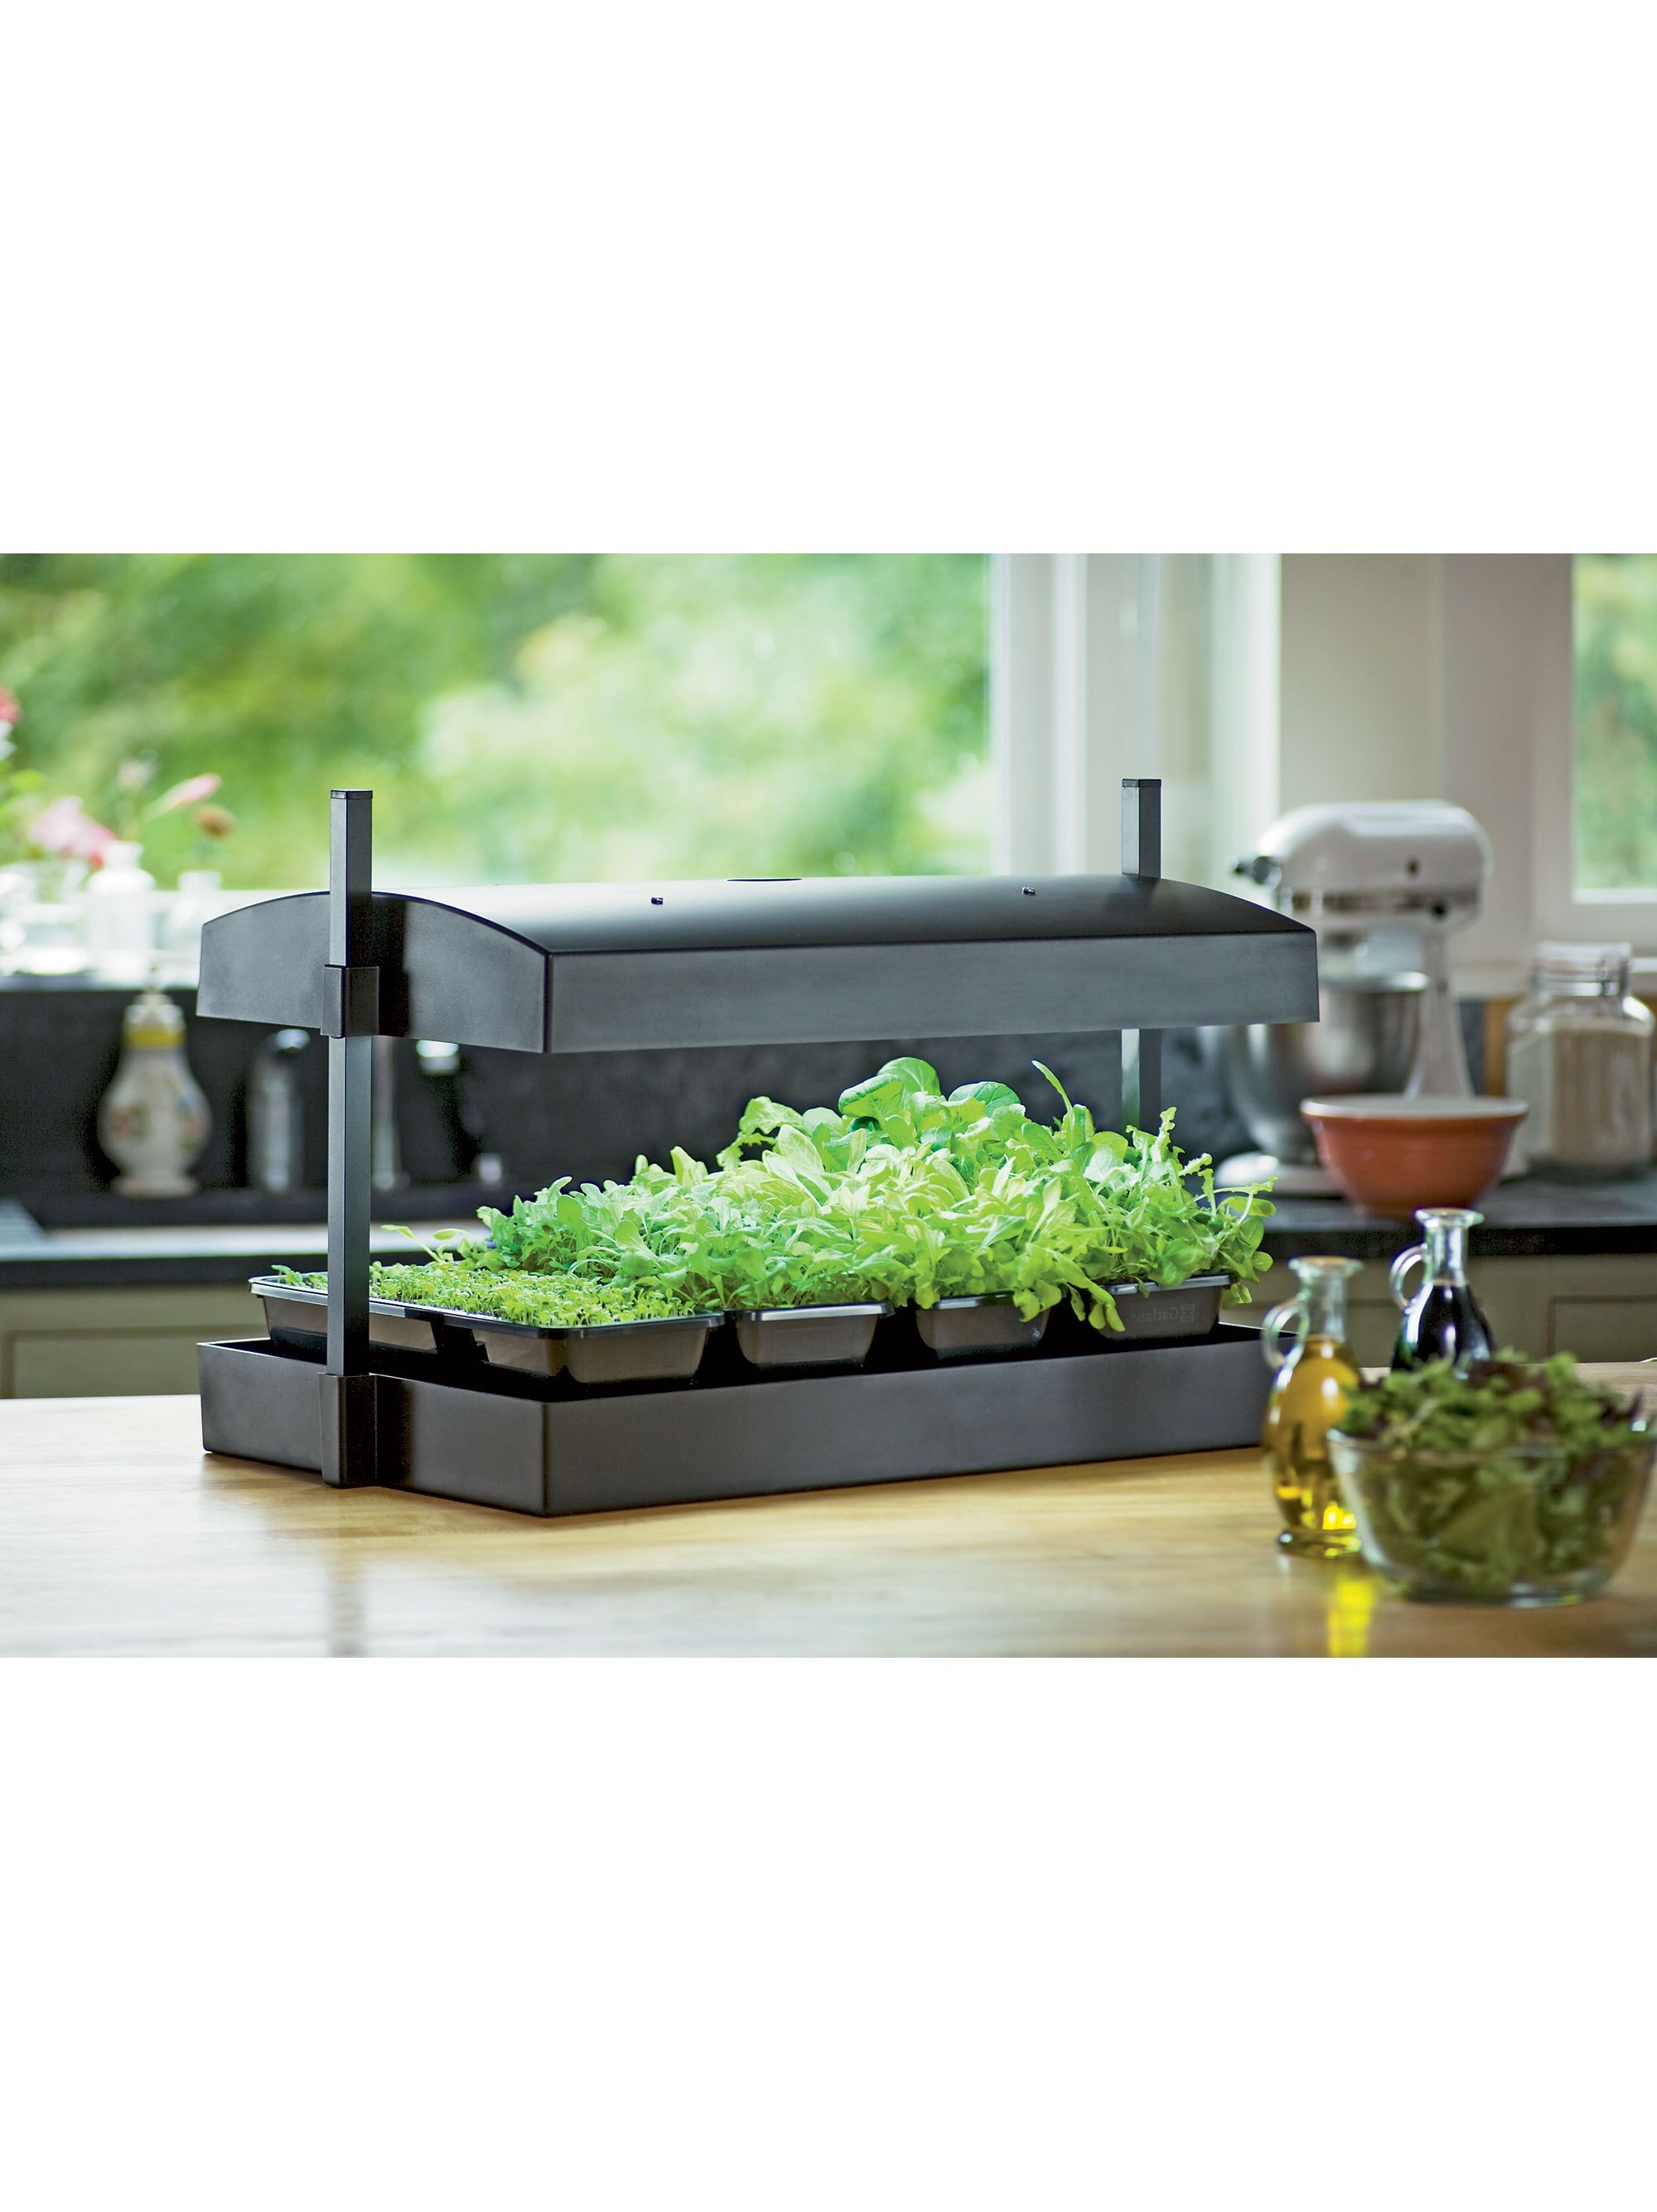 Indoor Herb Garden Kit My Greens Light Gardener S Supply